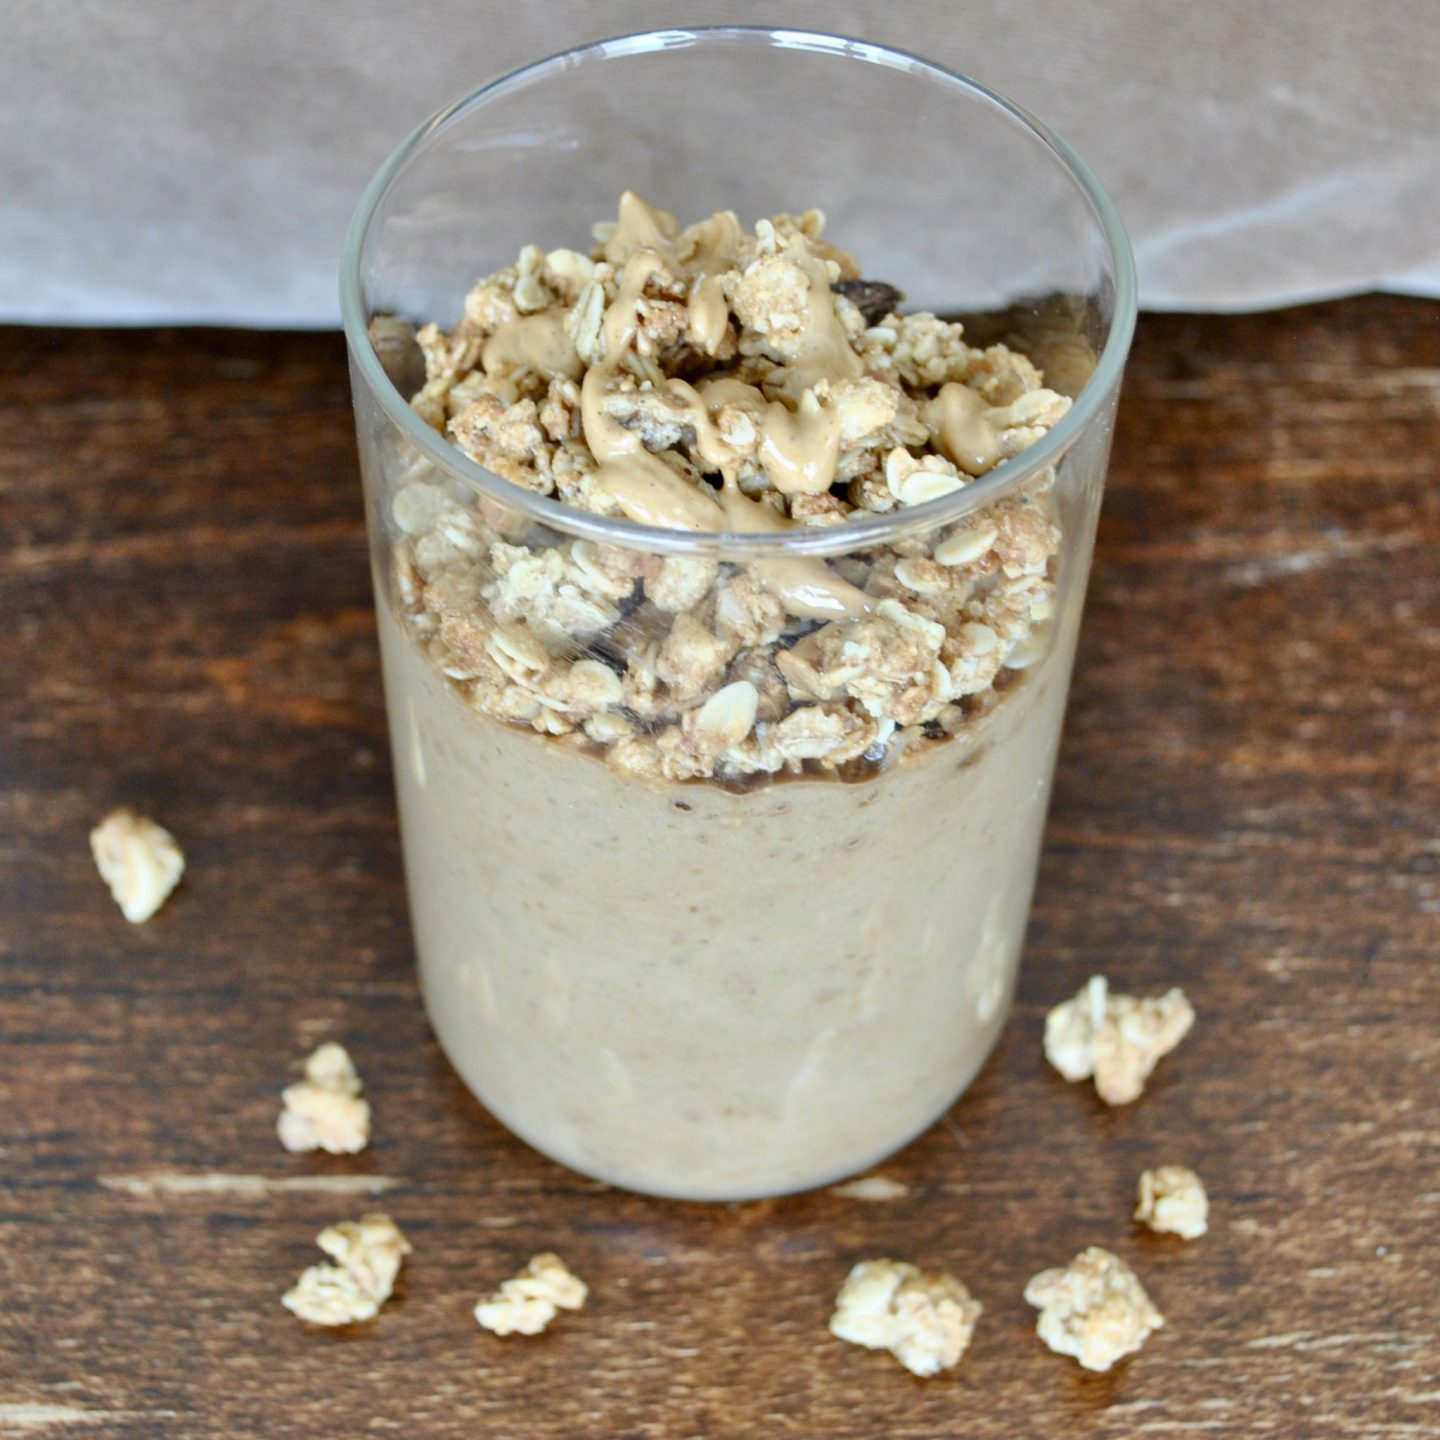 Chocolate Peanut Butter Cup Milkshake topped with Homemade Banana Granola